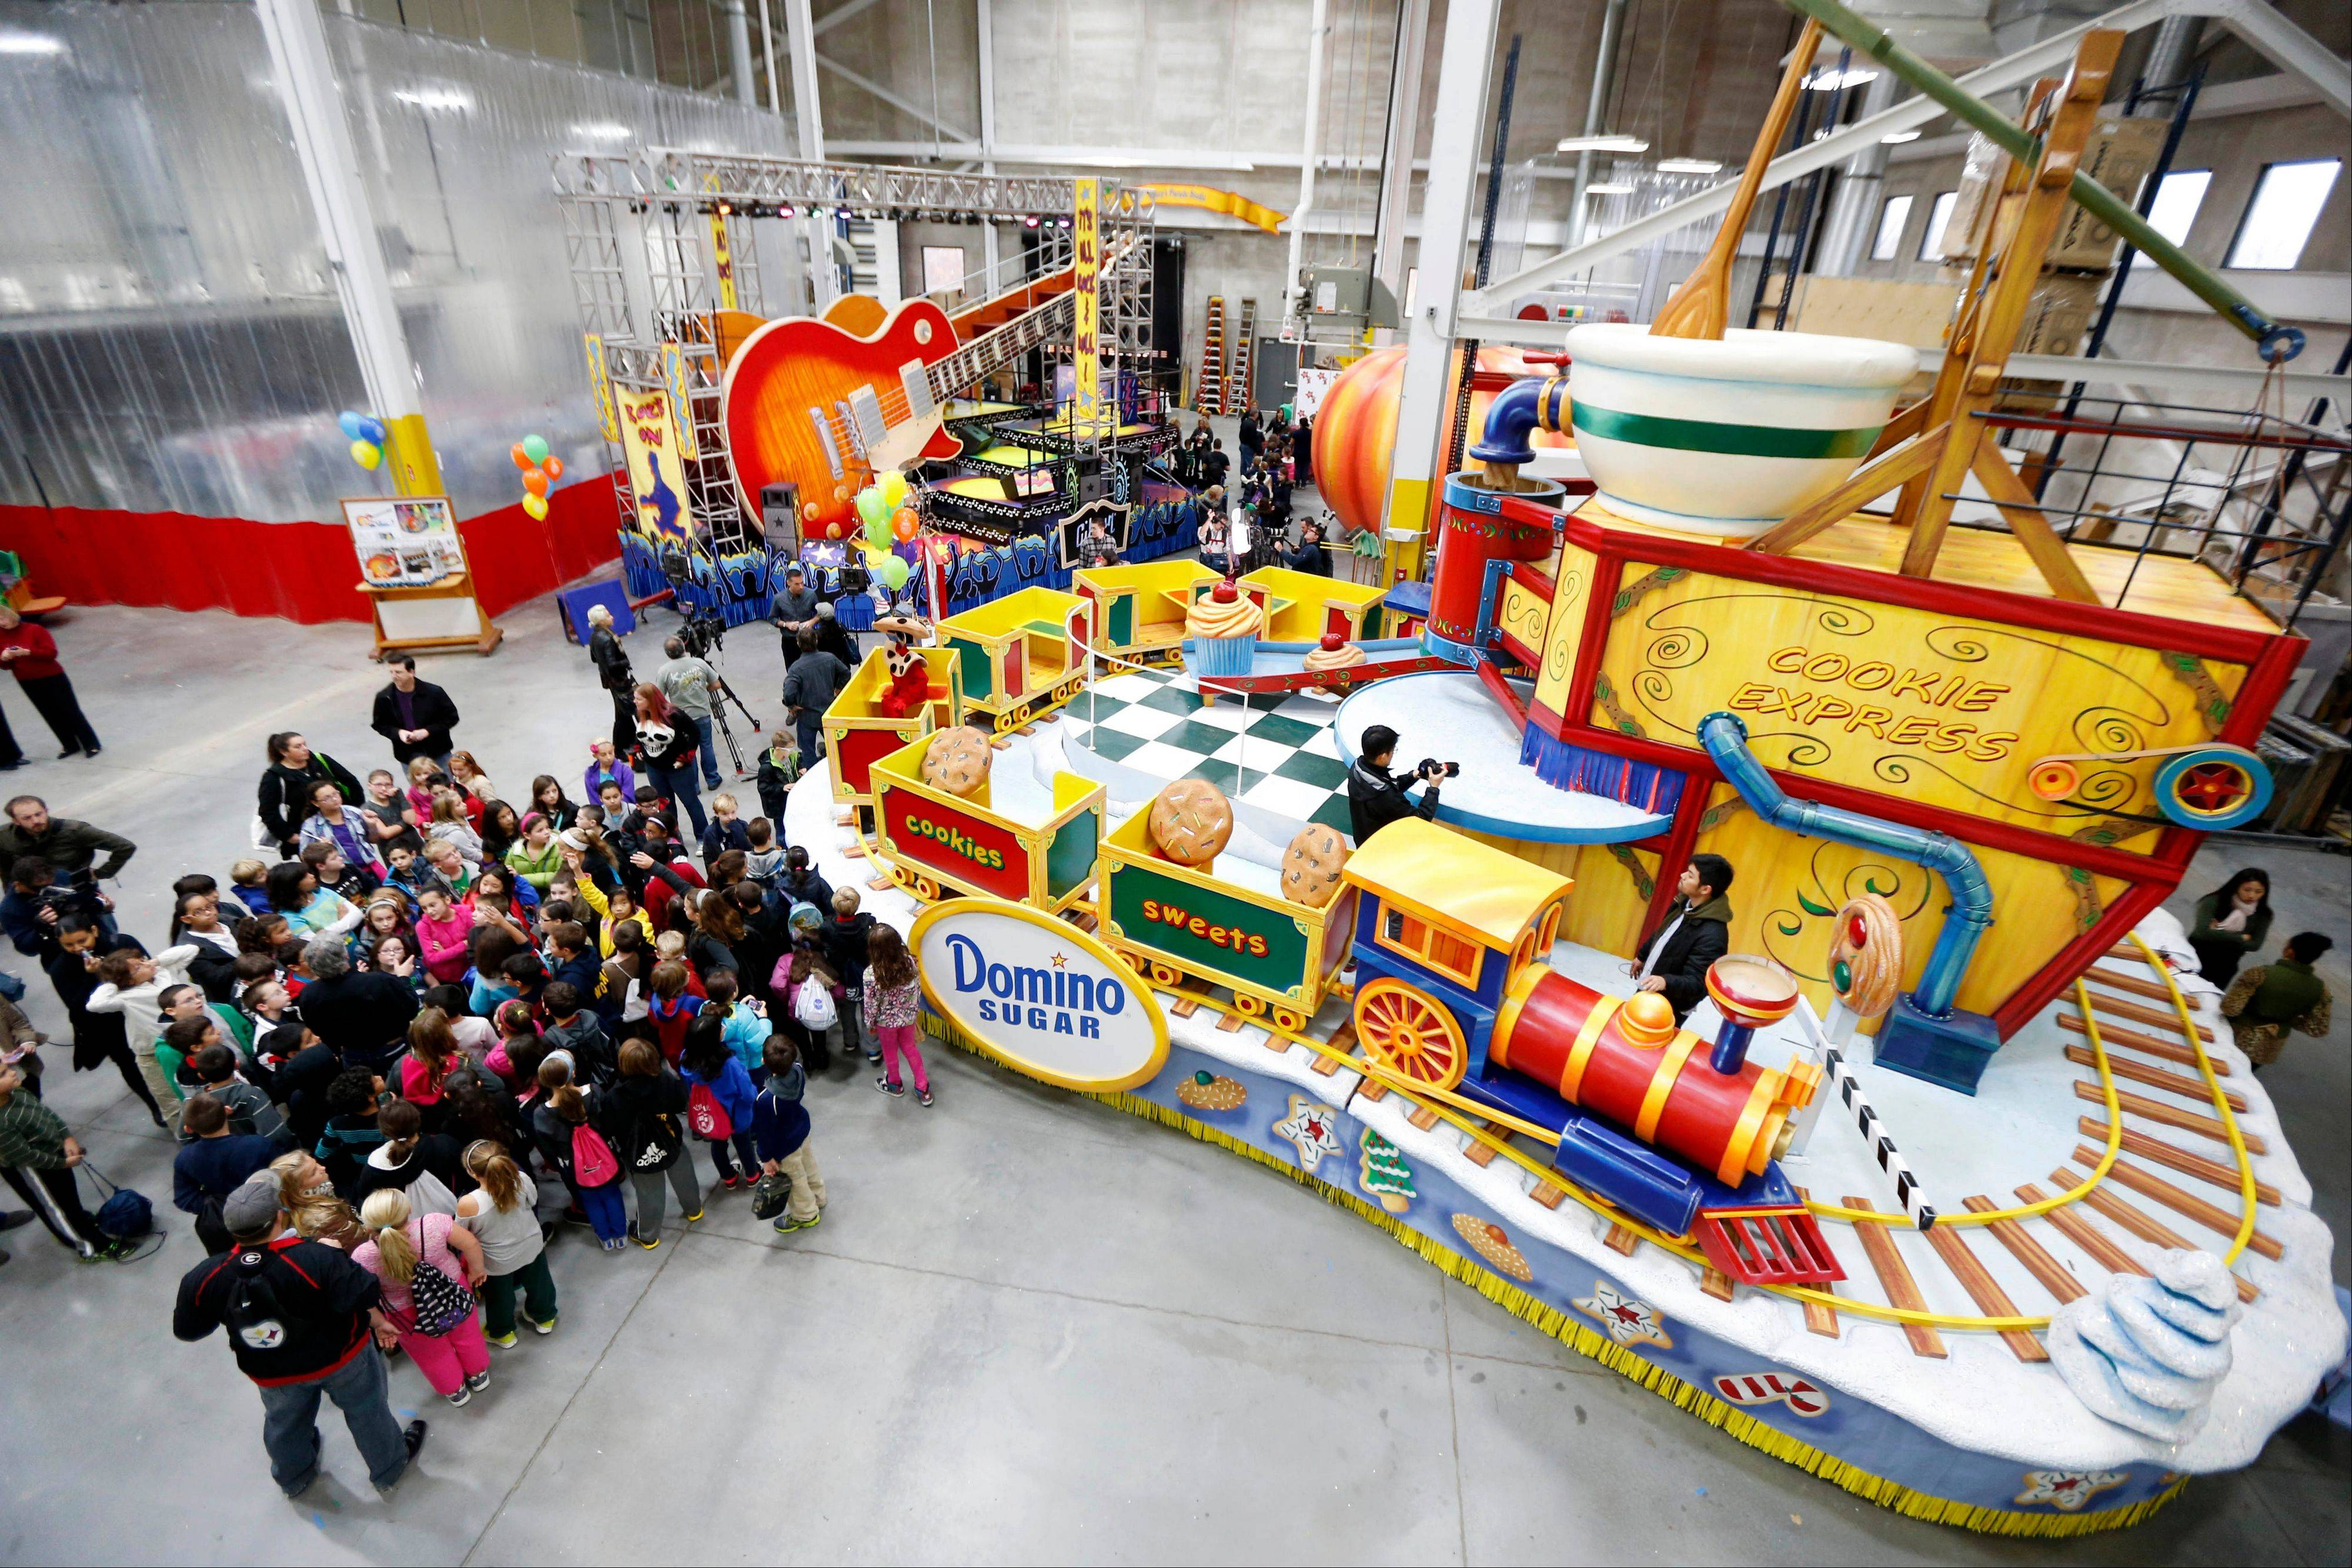 Schoolchildren are given a sneak peek of the new floats for the Macy's Thanksgiving Day Parade during a field trip to the Macy's Studio.